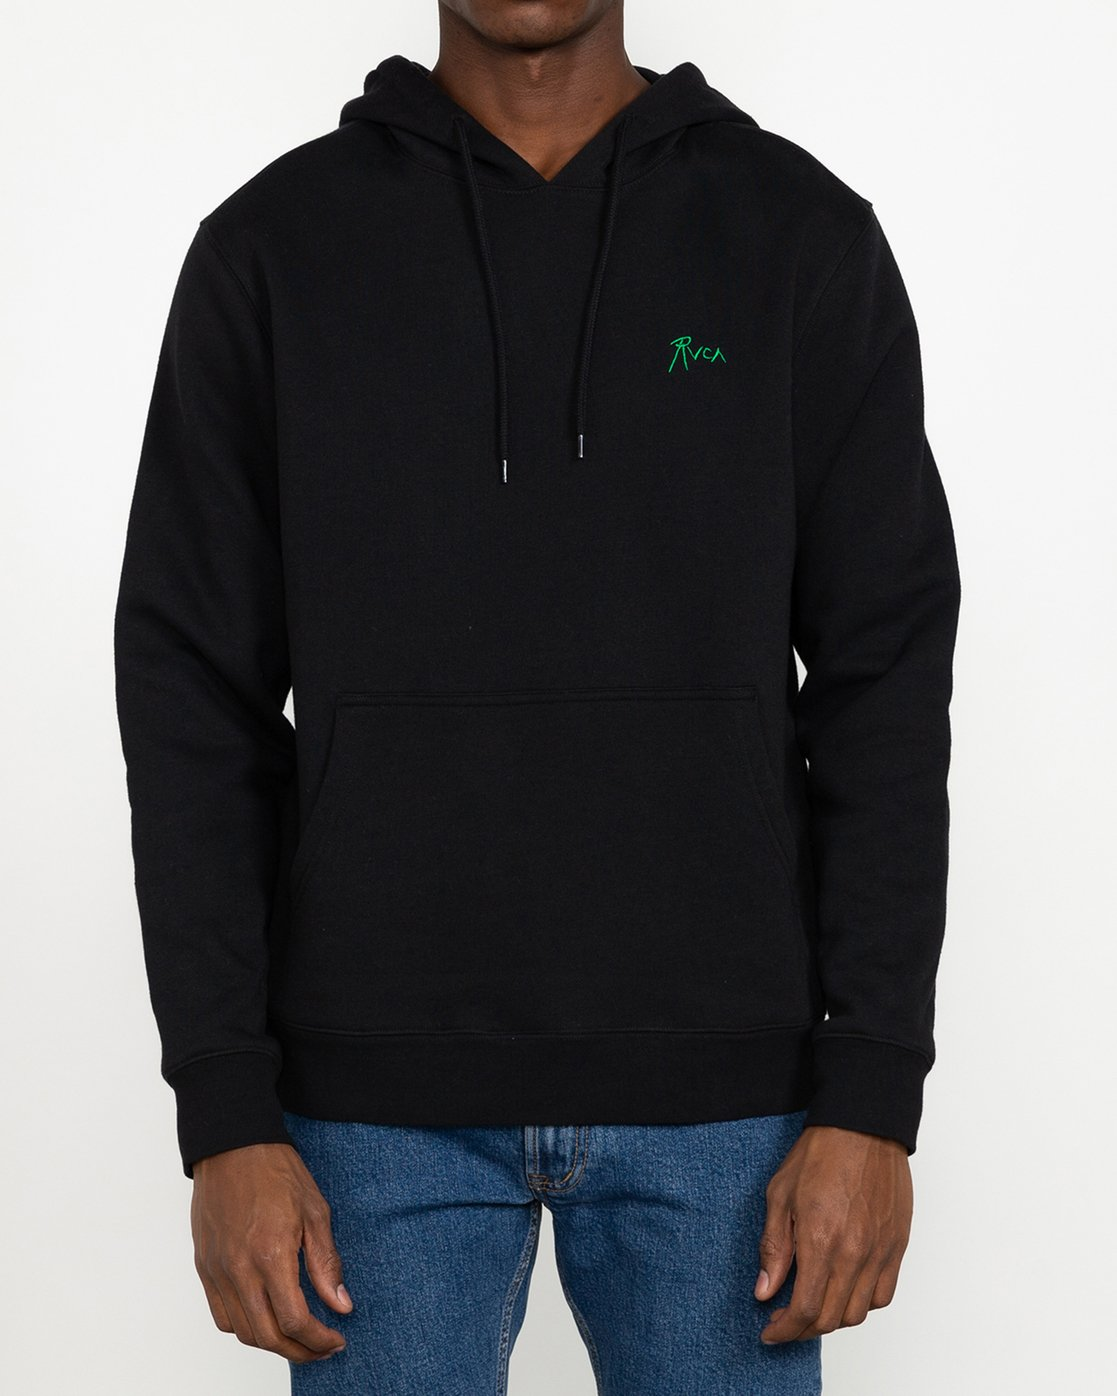 2 Stacey Rozich The Gorgeous Hussy - Hoodie for Men Black U1HORCRVF0 RVCA